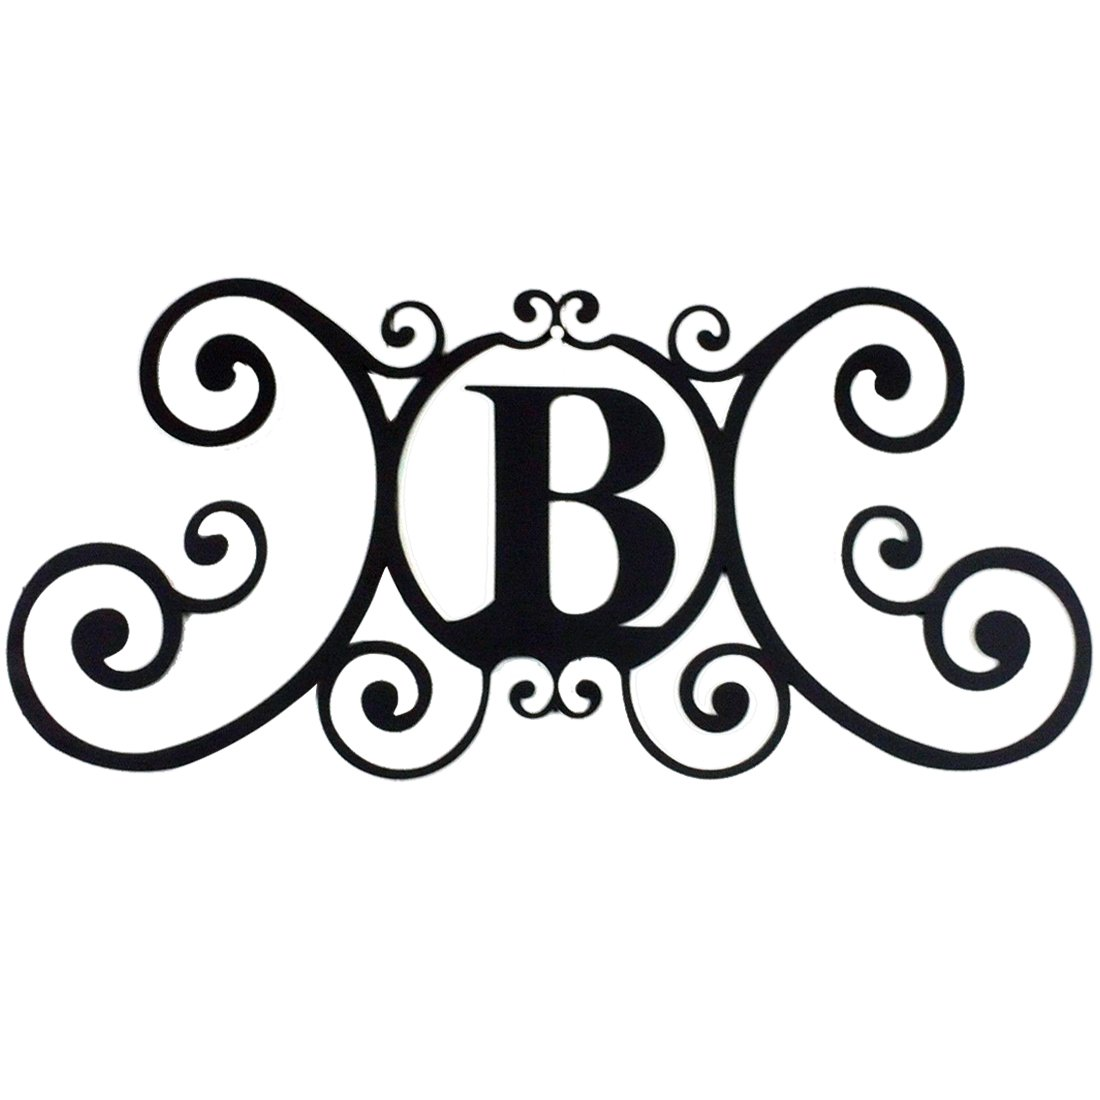 24 Inch House Plaque Letter - Wrought Iron Metal Scrolled Monogram Initial Letter Home Door Wall Hanging Art Decor Family Name Last Name Letter Sign (B, 24 x 11 inches,Thick 0.078 inch (2mm))